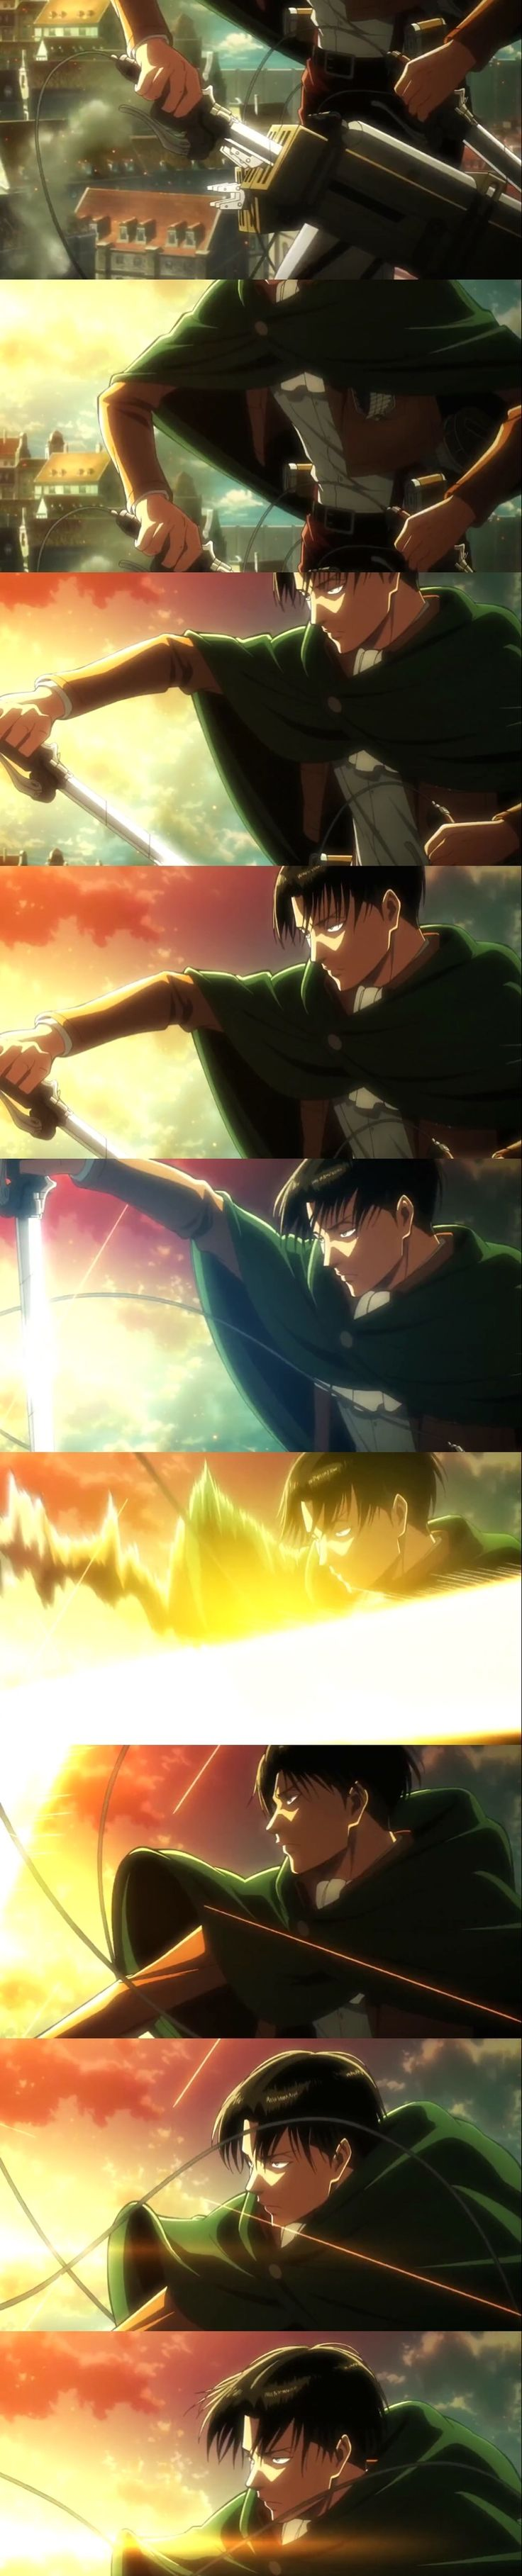 LEEEVVVVVIIII!! LOVE ME FOREVER!!!!^^^yaaaaaasssssss! Someone screenshotted Levi's but in the opening! I've been wanting to see this for a while!